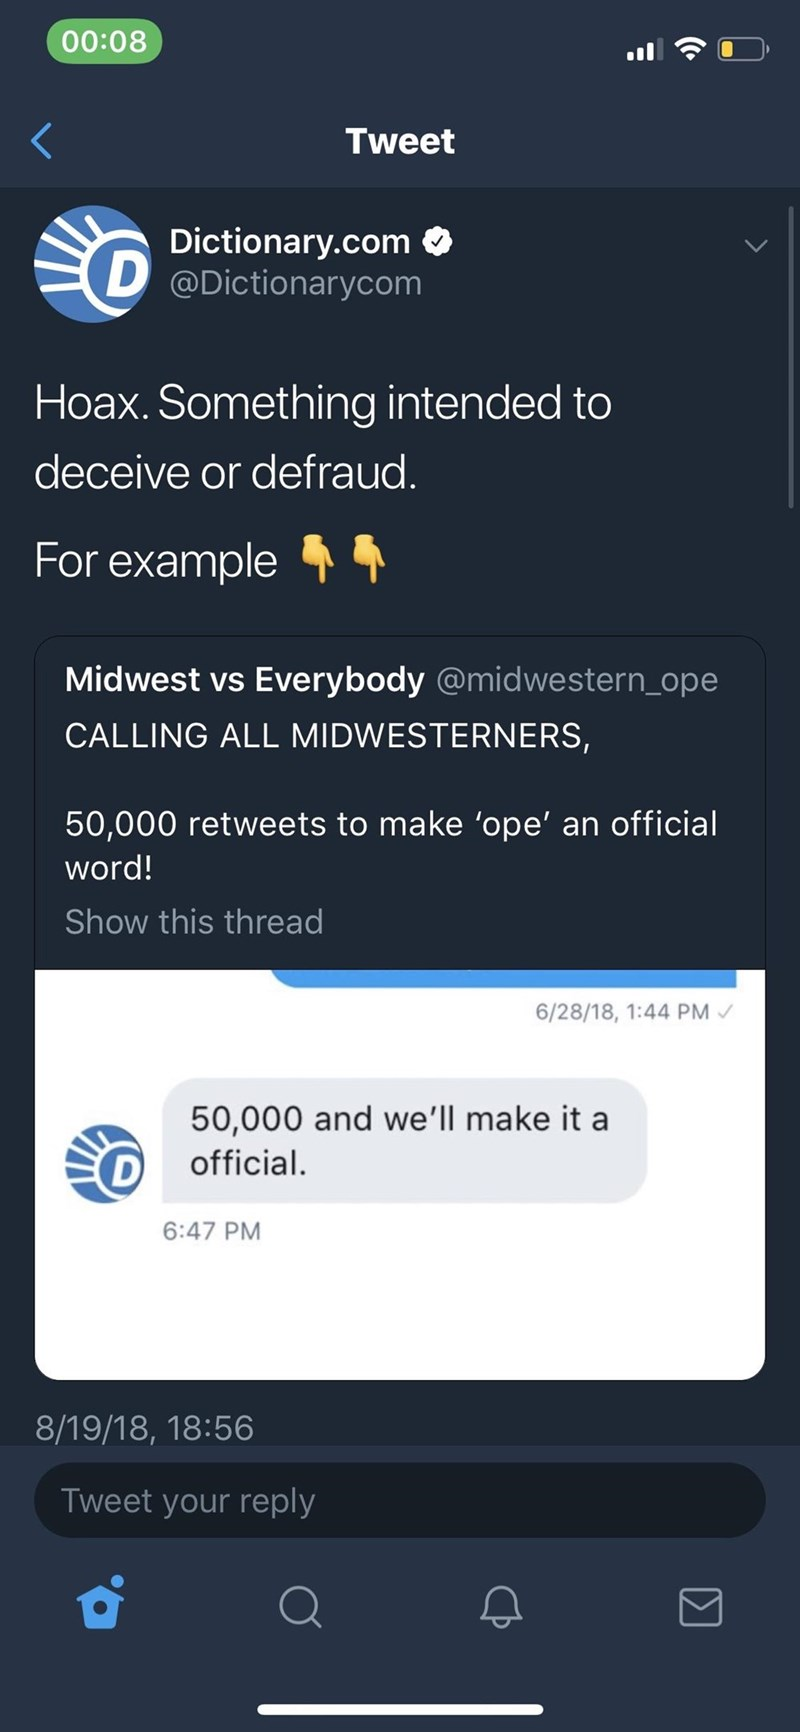 twitter Hoax. Something intended to deceive or defraud. For example Midwest vs Everybody @midwestern_ope CALLING ALL MIDWESTERNERS, 50,000 retweets to make 'ope' an official word! Show this thread 6/28/18, 1:44 PM 50,000 and we'll make it a official. 6:47 PM 8/19/18, 18:56 Tweet your reply